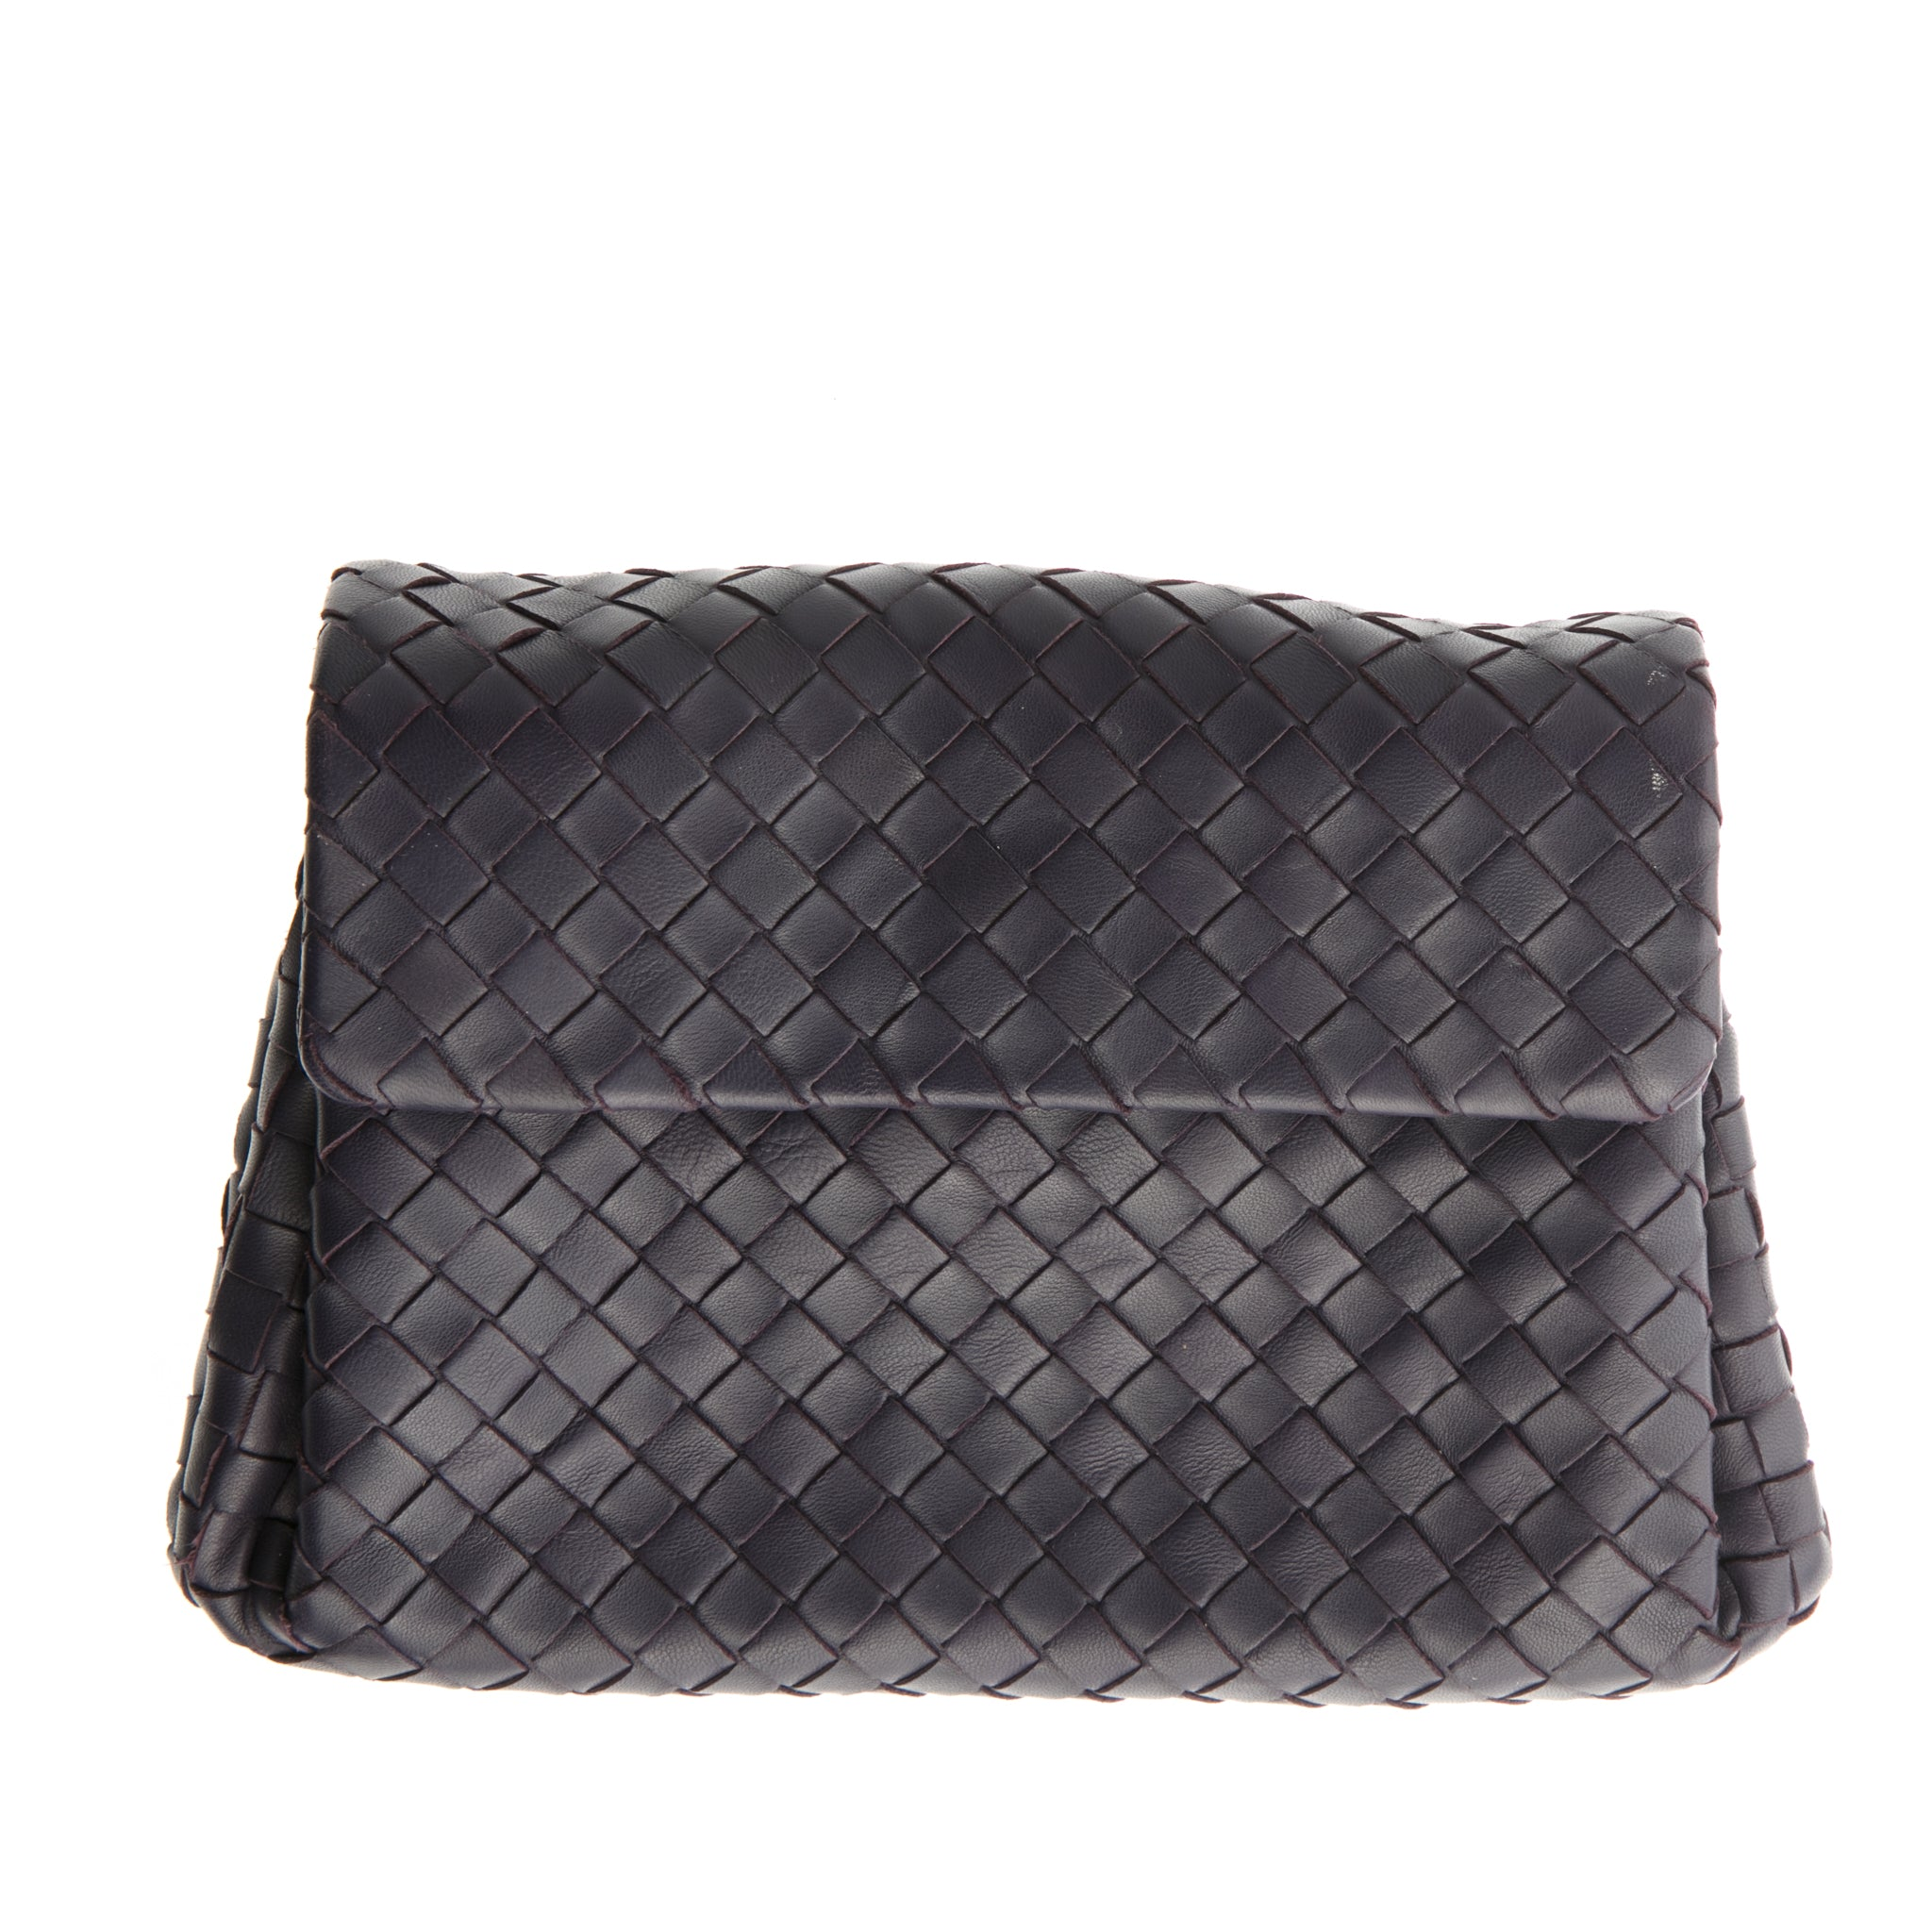 Bottega Veneta. Mini Woven Intrecciato Leather Clutch.  495.00 CAD Sale  price Est Retail  1,550.00 CAD 16a0f69d38